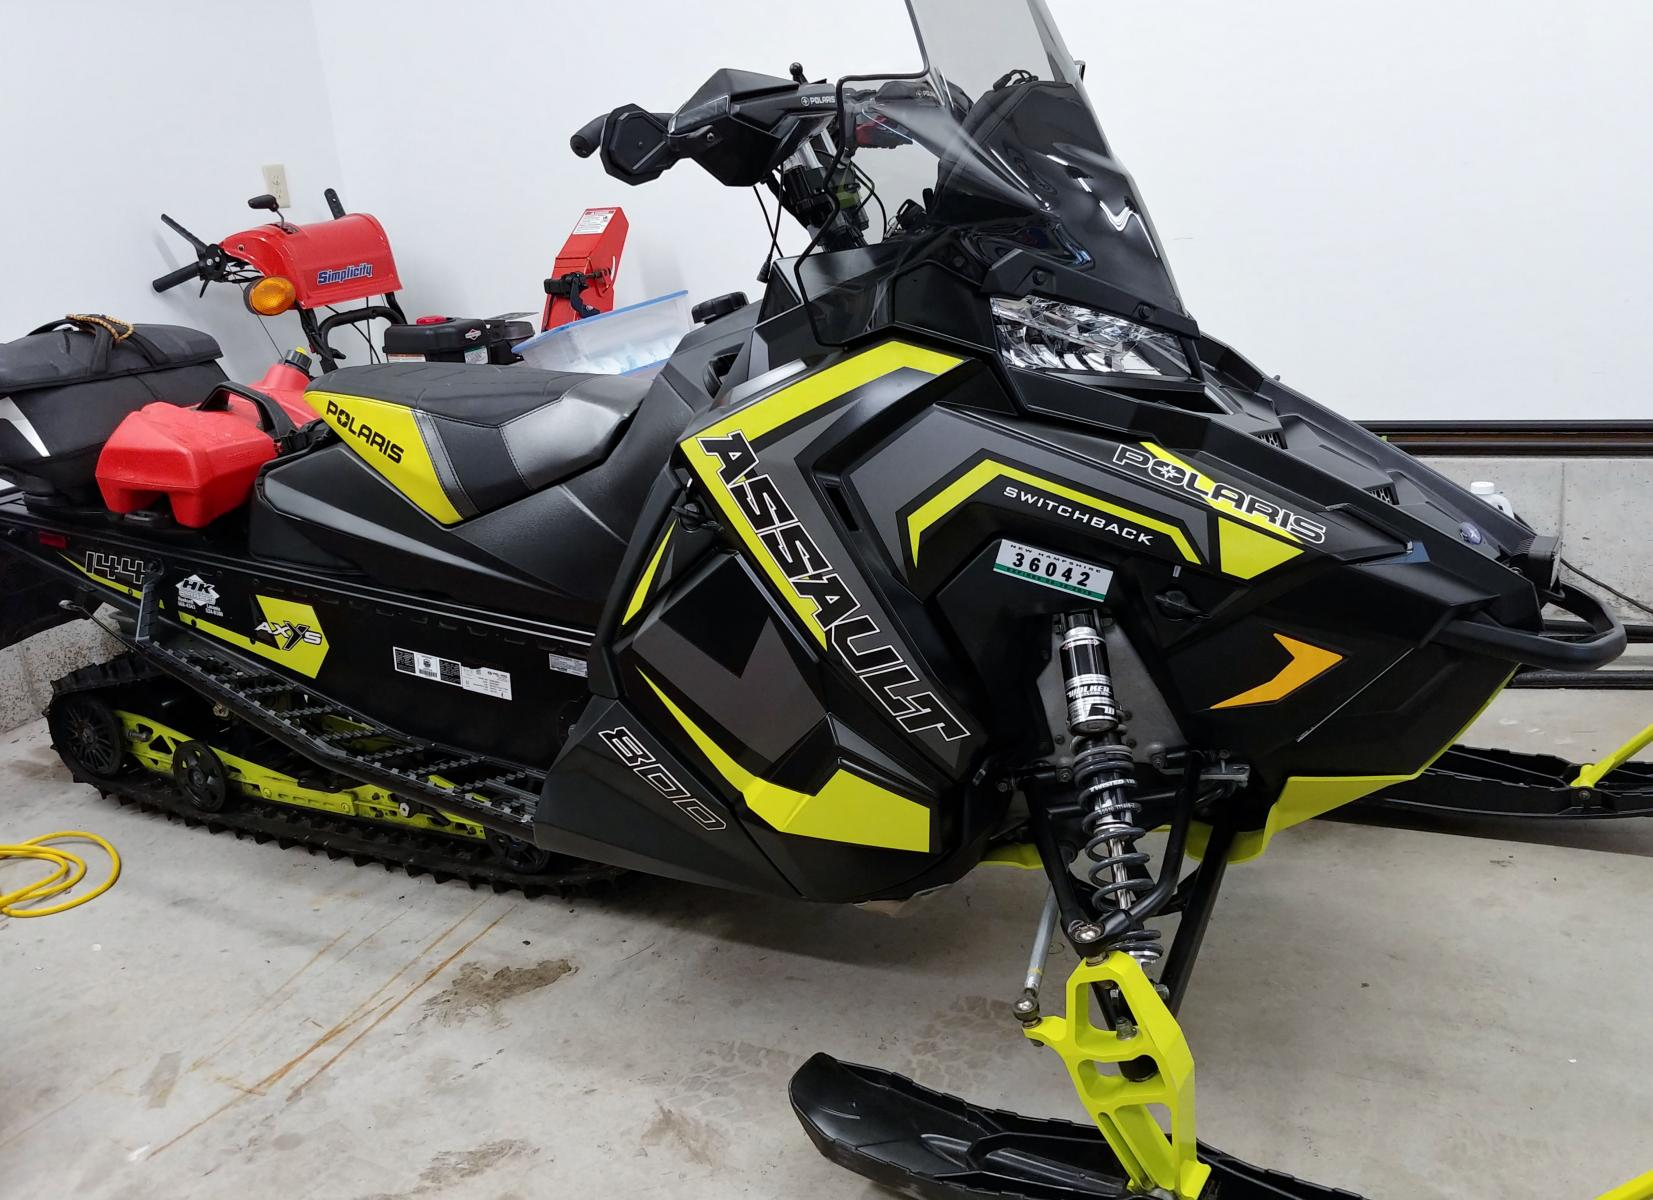 Click image for larger version  Name:2018 Assault 800.jpg Views:256 Size:231.8 KB ID:2030434